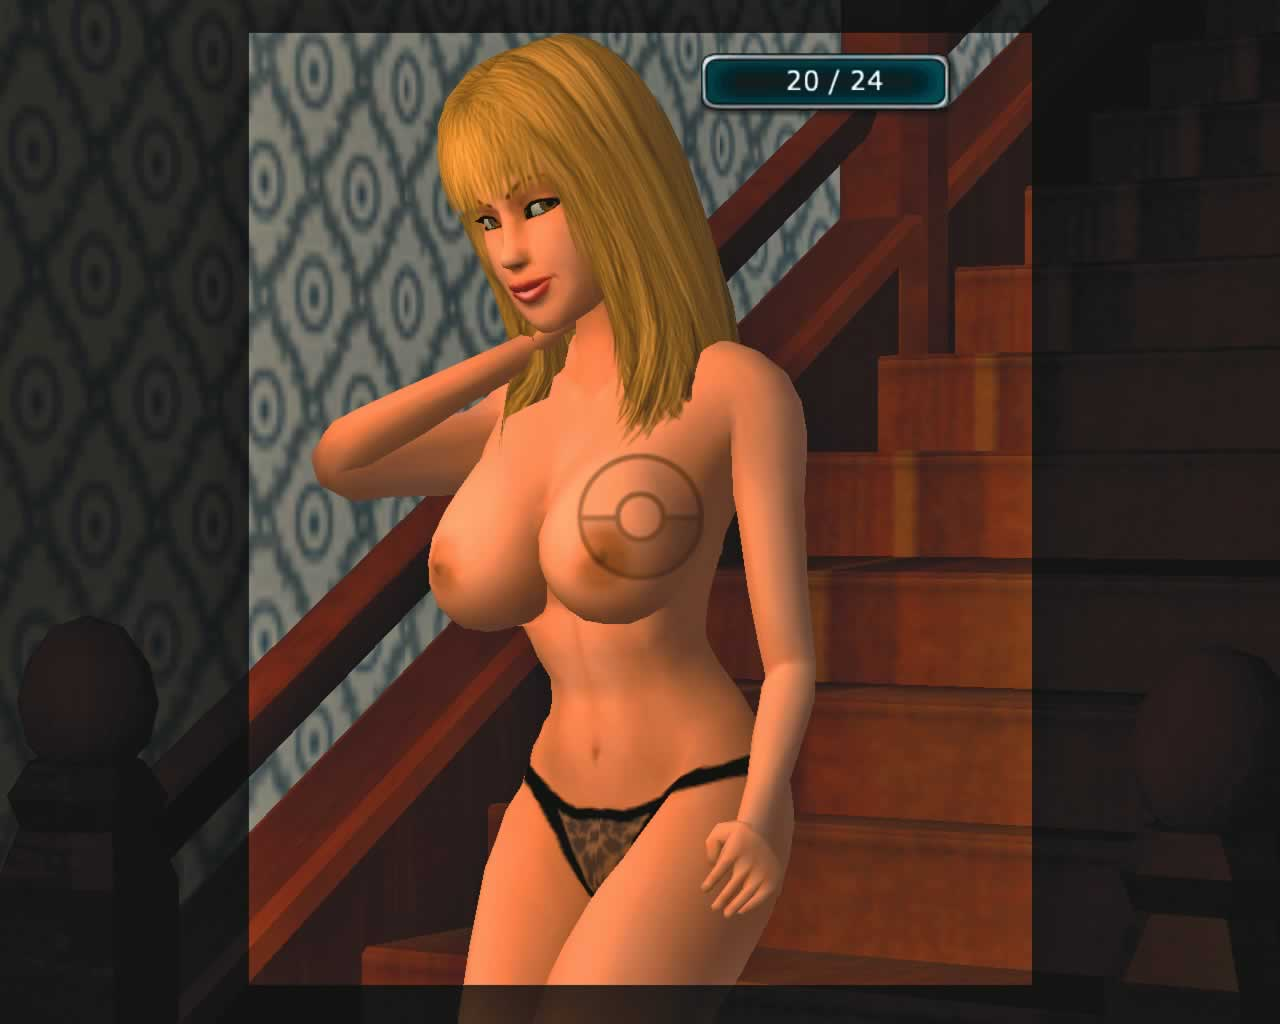 Nude mod game ps naked pics